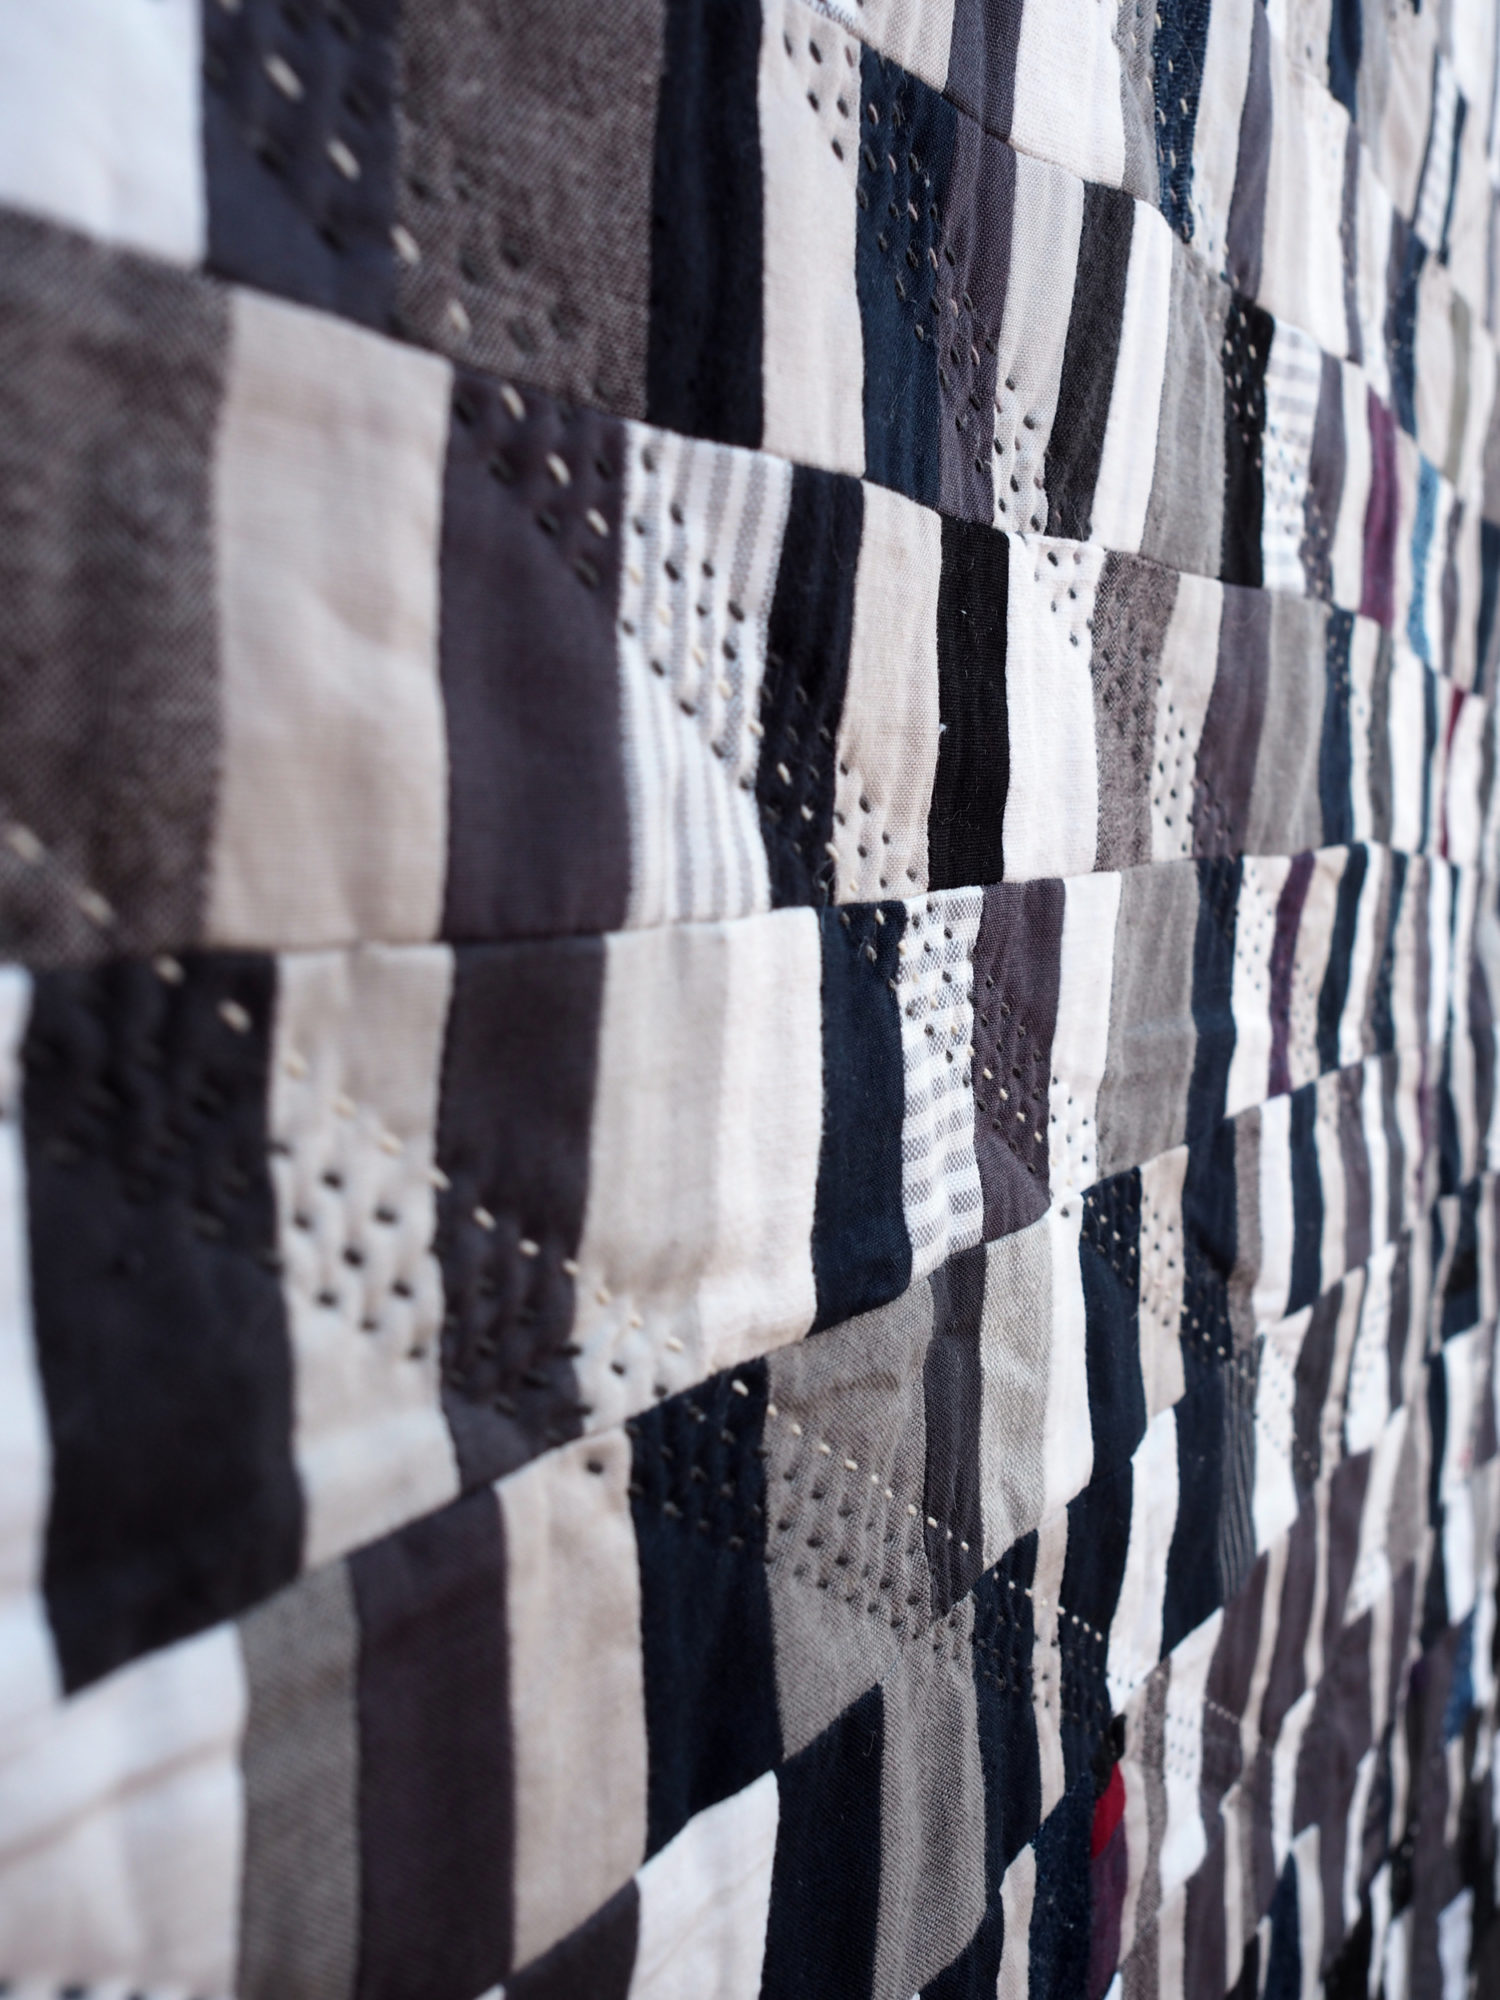 Quilt no. 020 by Shelby Marie Skumanich: Medium Shade Close Up